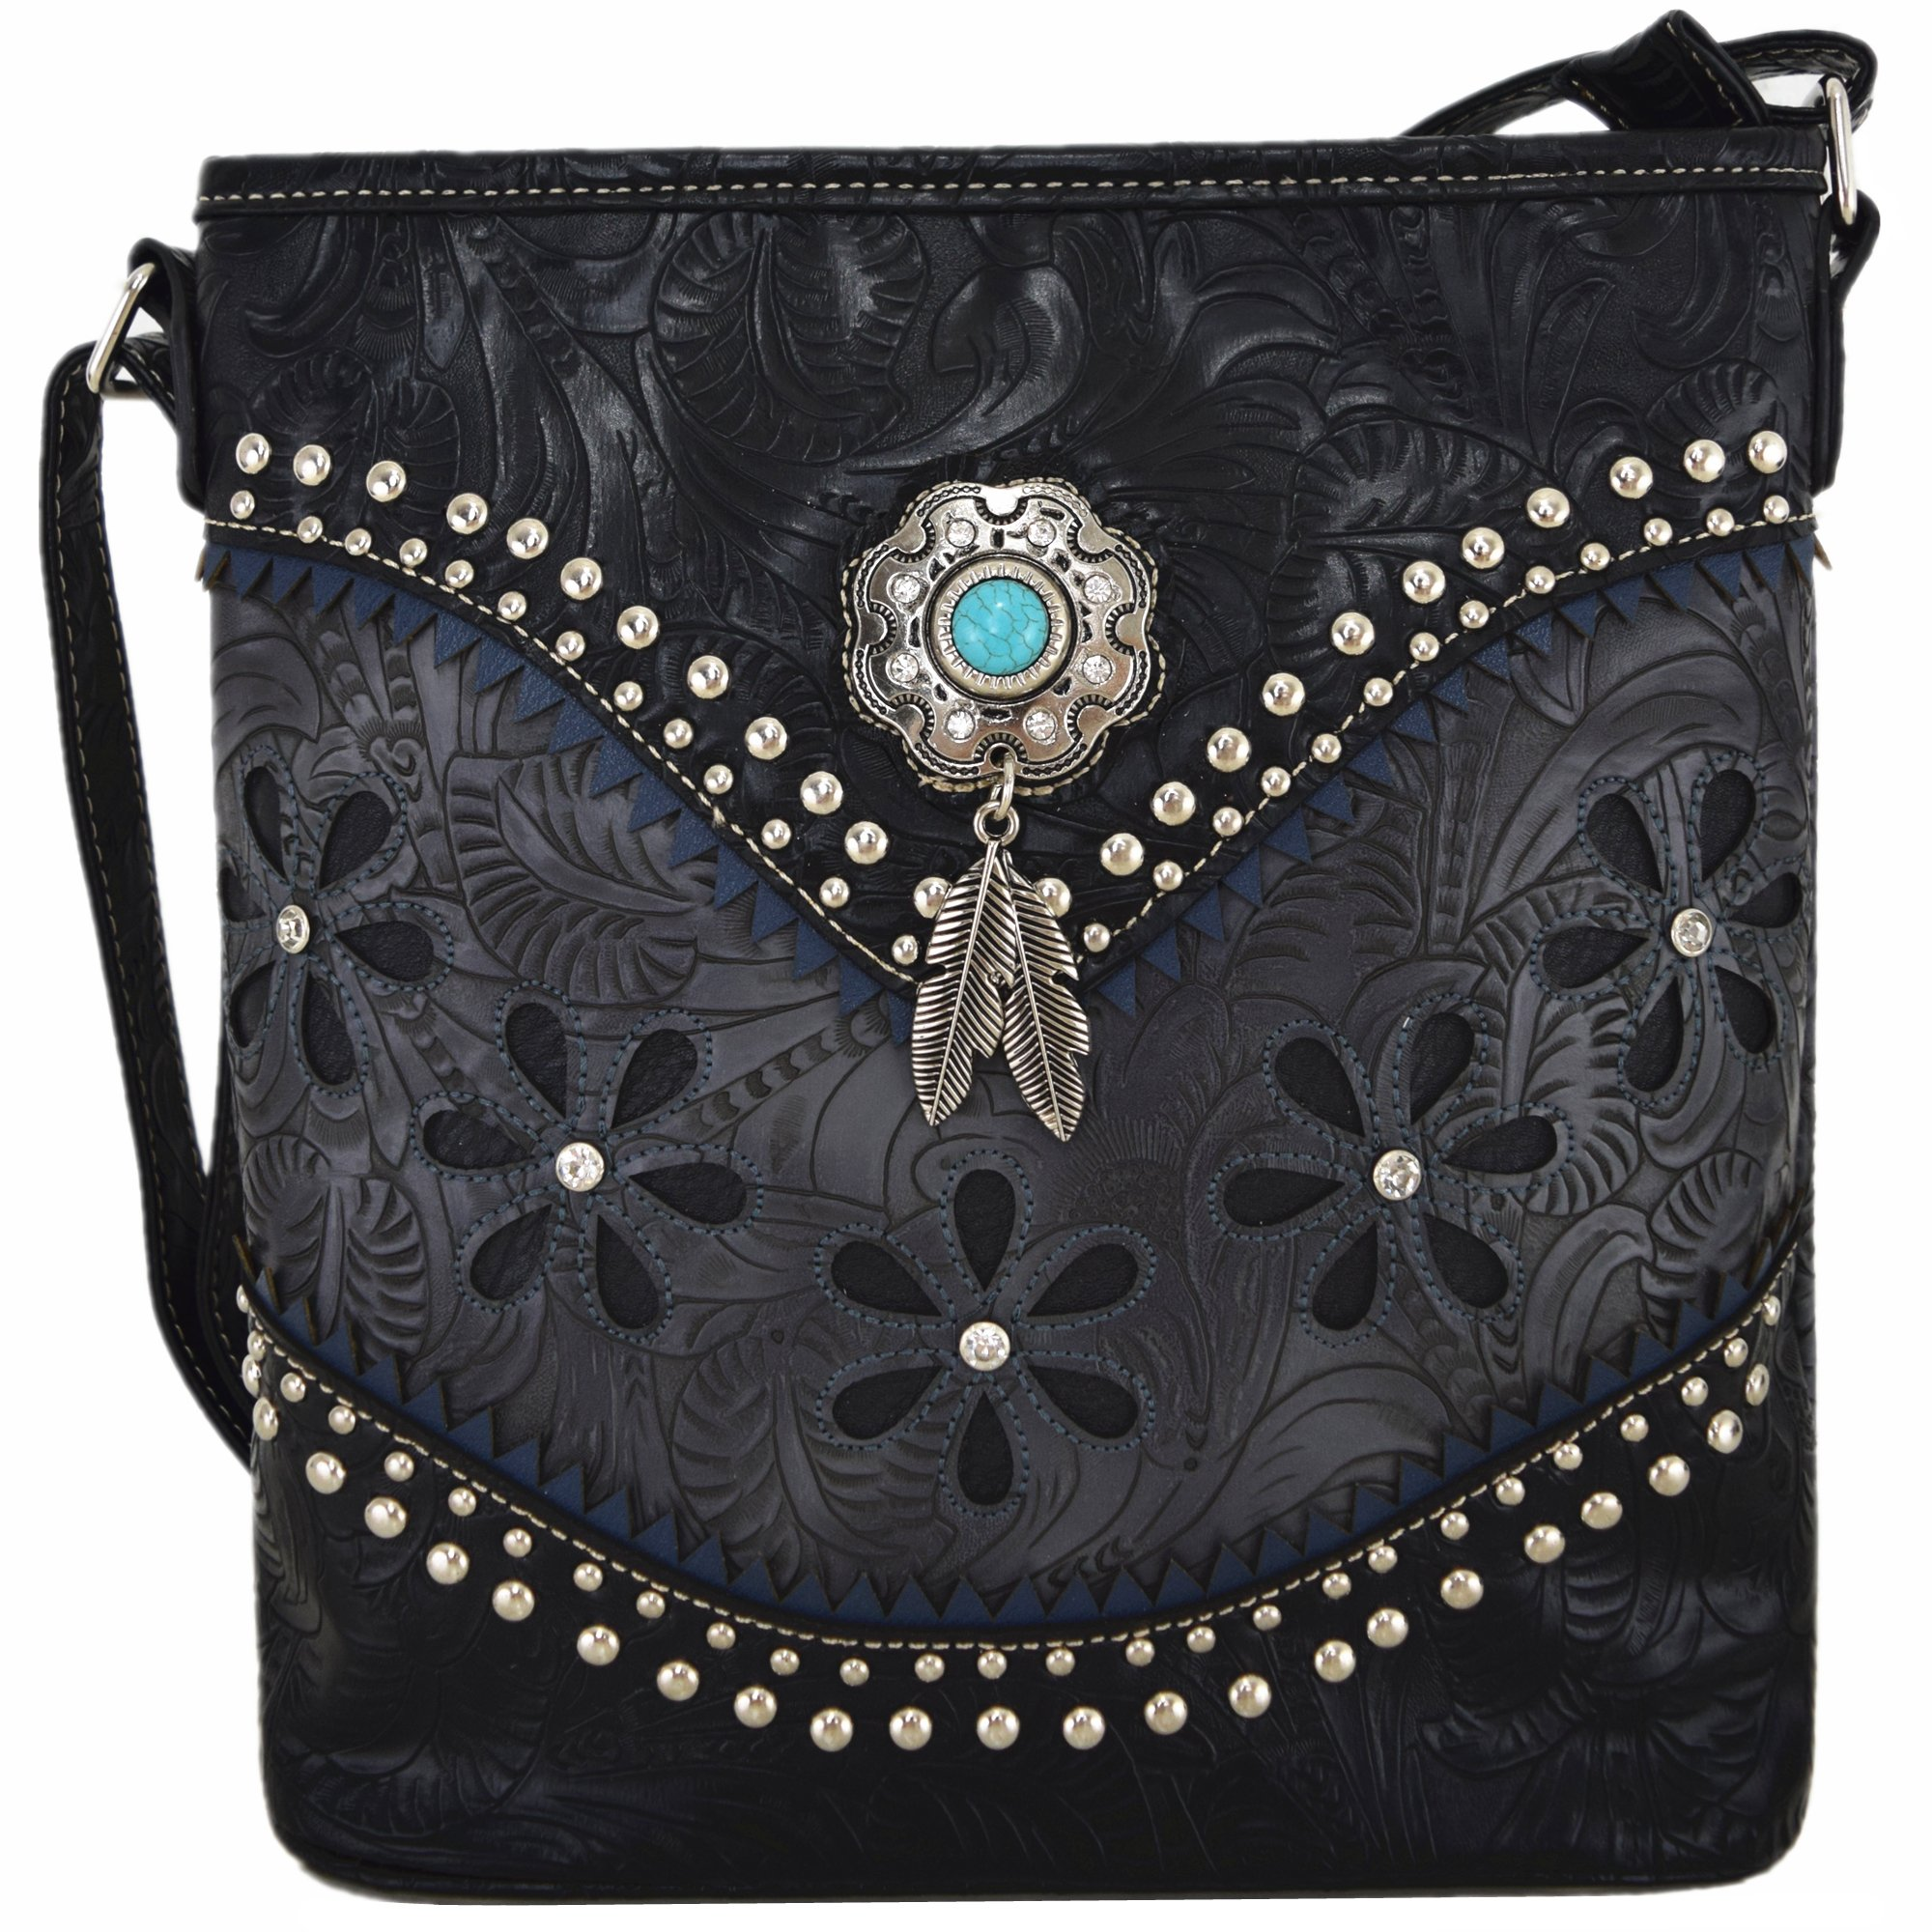 Western Style Tooled Leather Cross Body Handbags Concealed Carry Purse Women Country Single Shoulder Bag (Black)